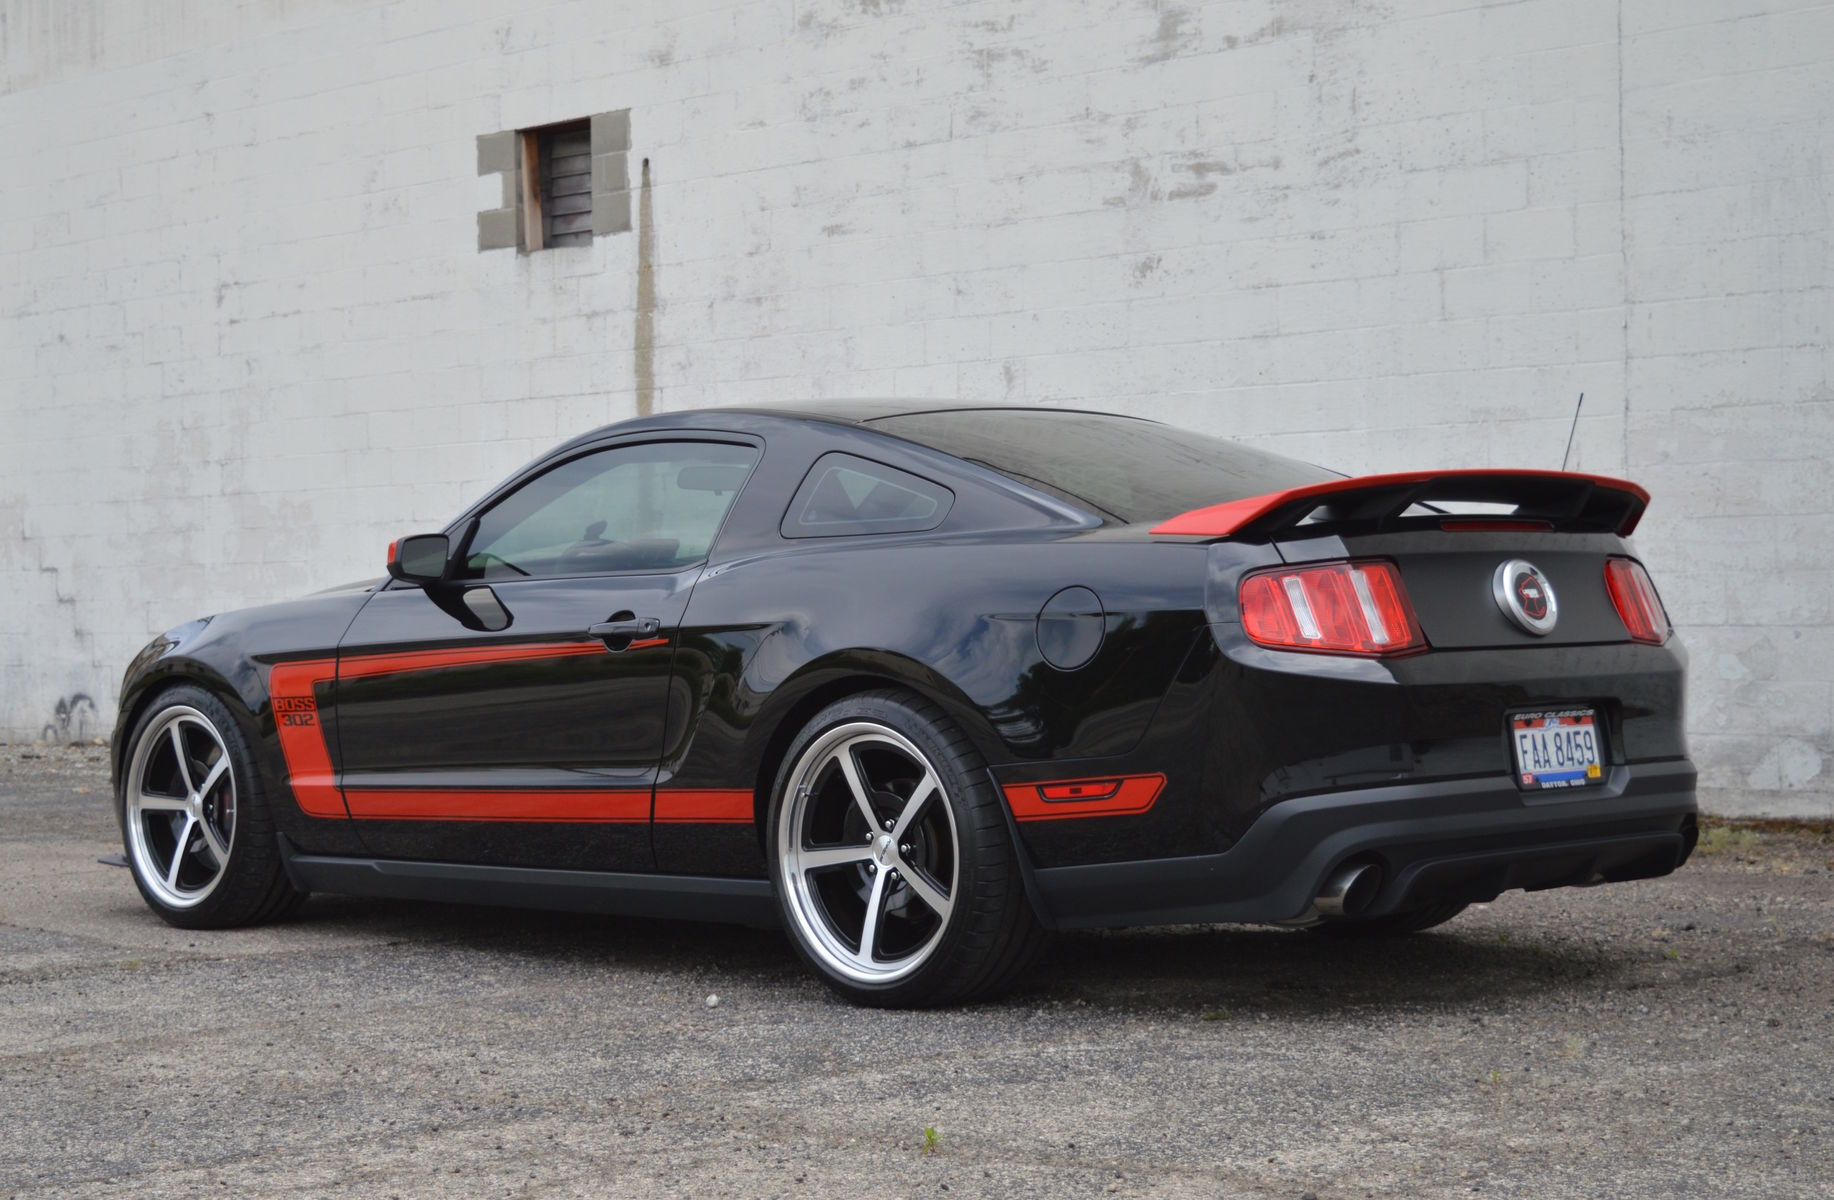 2012 Ford Mustang | Dale Oakes' 2012 Mustang Boss 302 Laguna Seca Edition on Forgeline Heritage Series FL500 Wheels